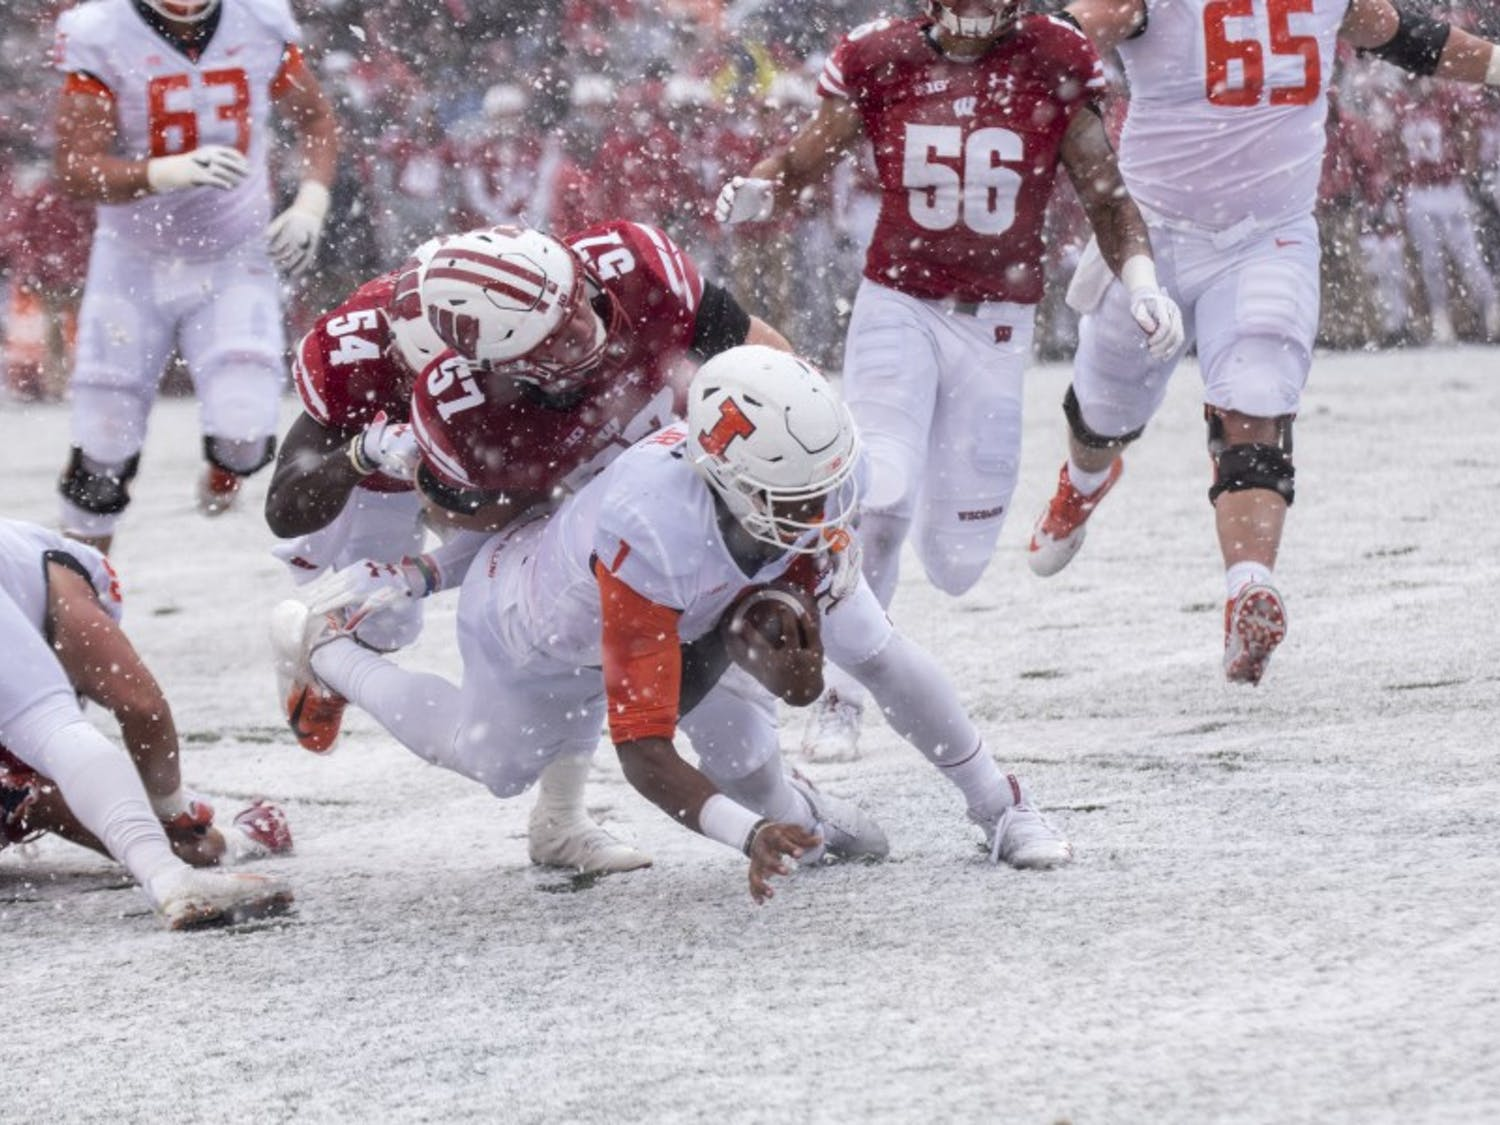 Wisconsin's defense took advantage of a sudden snowstorm late in the first quarter to collect three interceptions and a pair of fumbles in the first half.